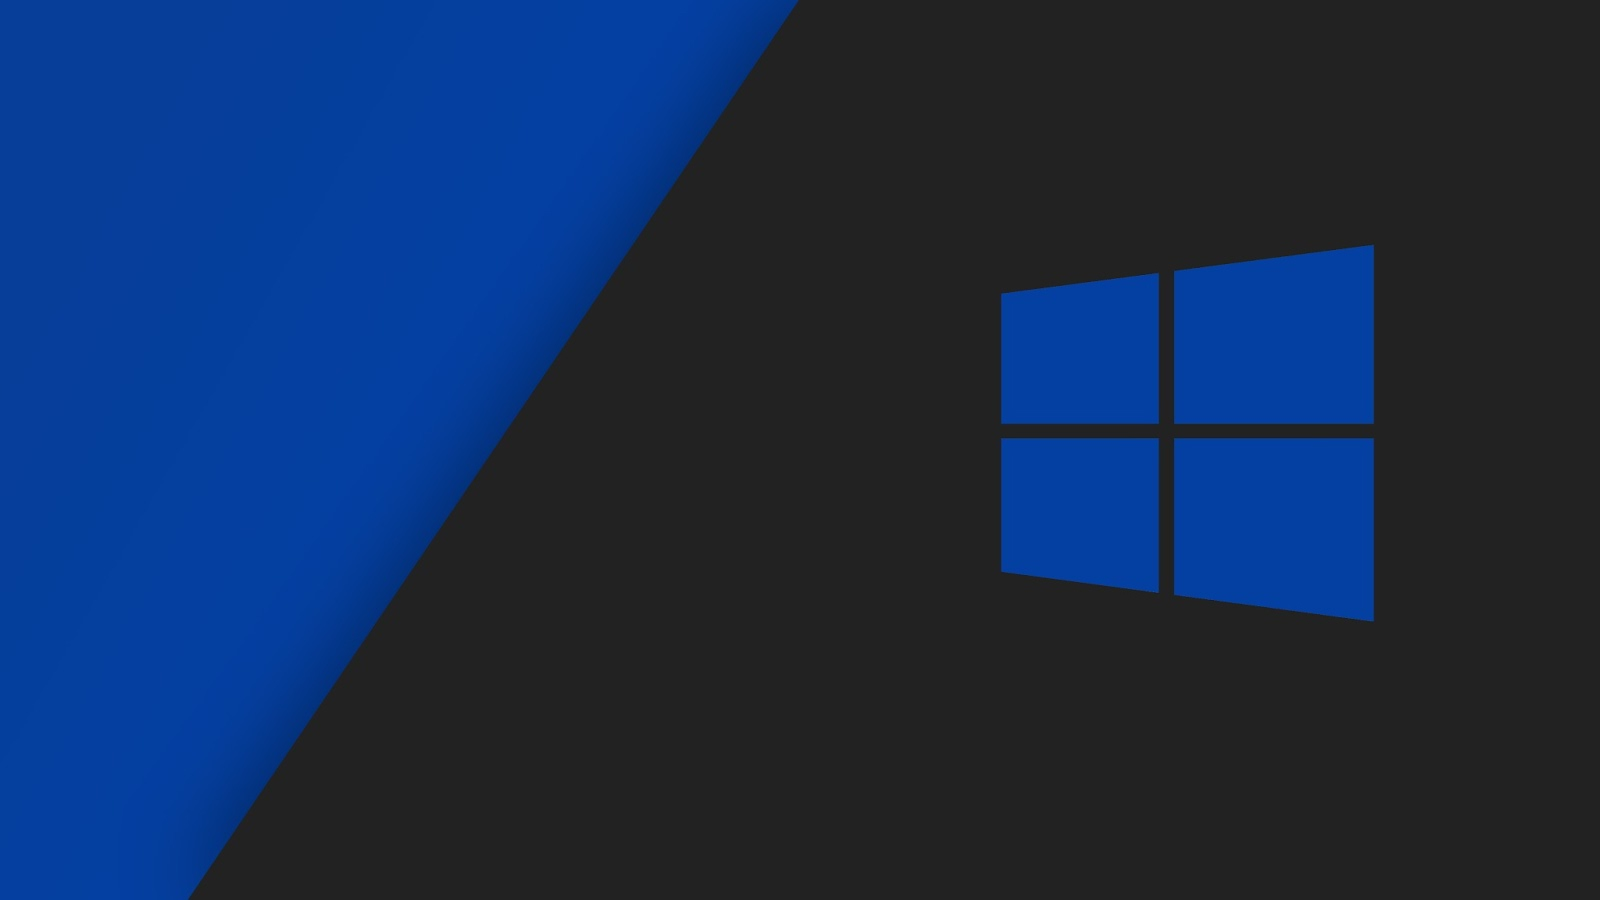 windows 10 hd wallpapers free windows 10 dark free download